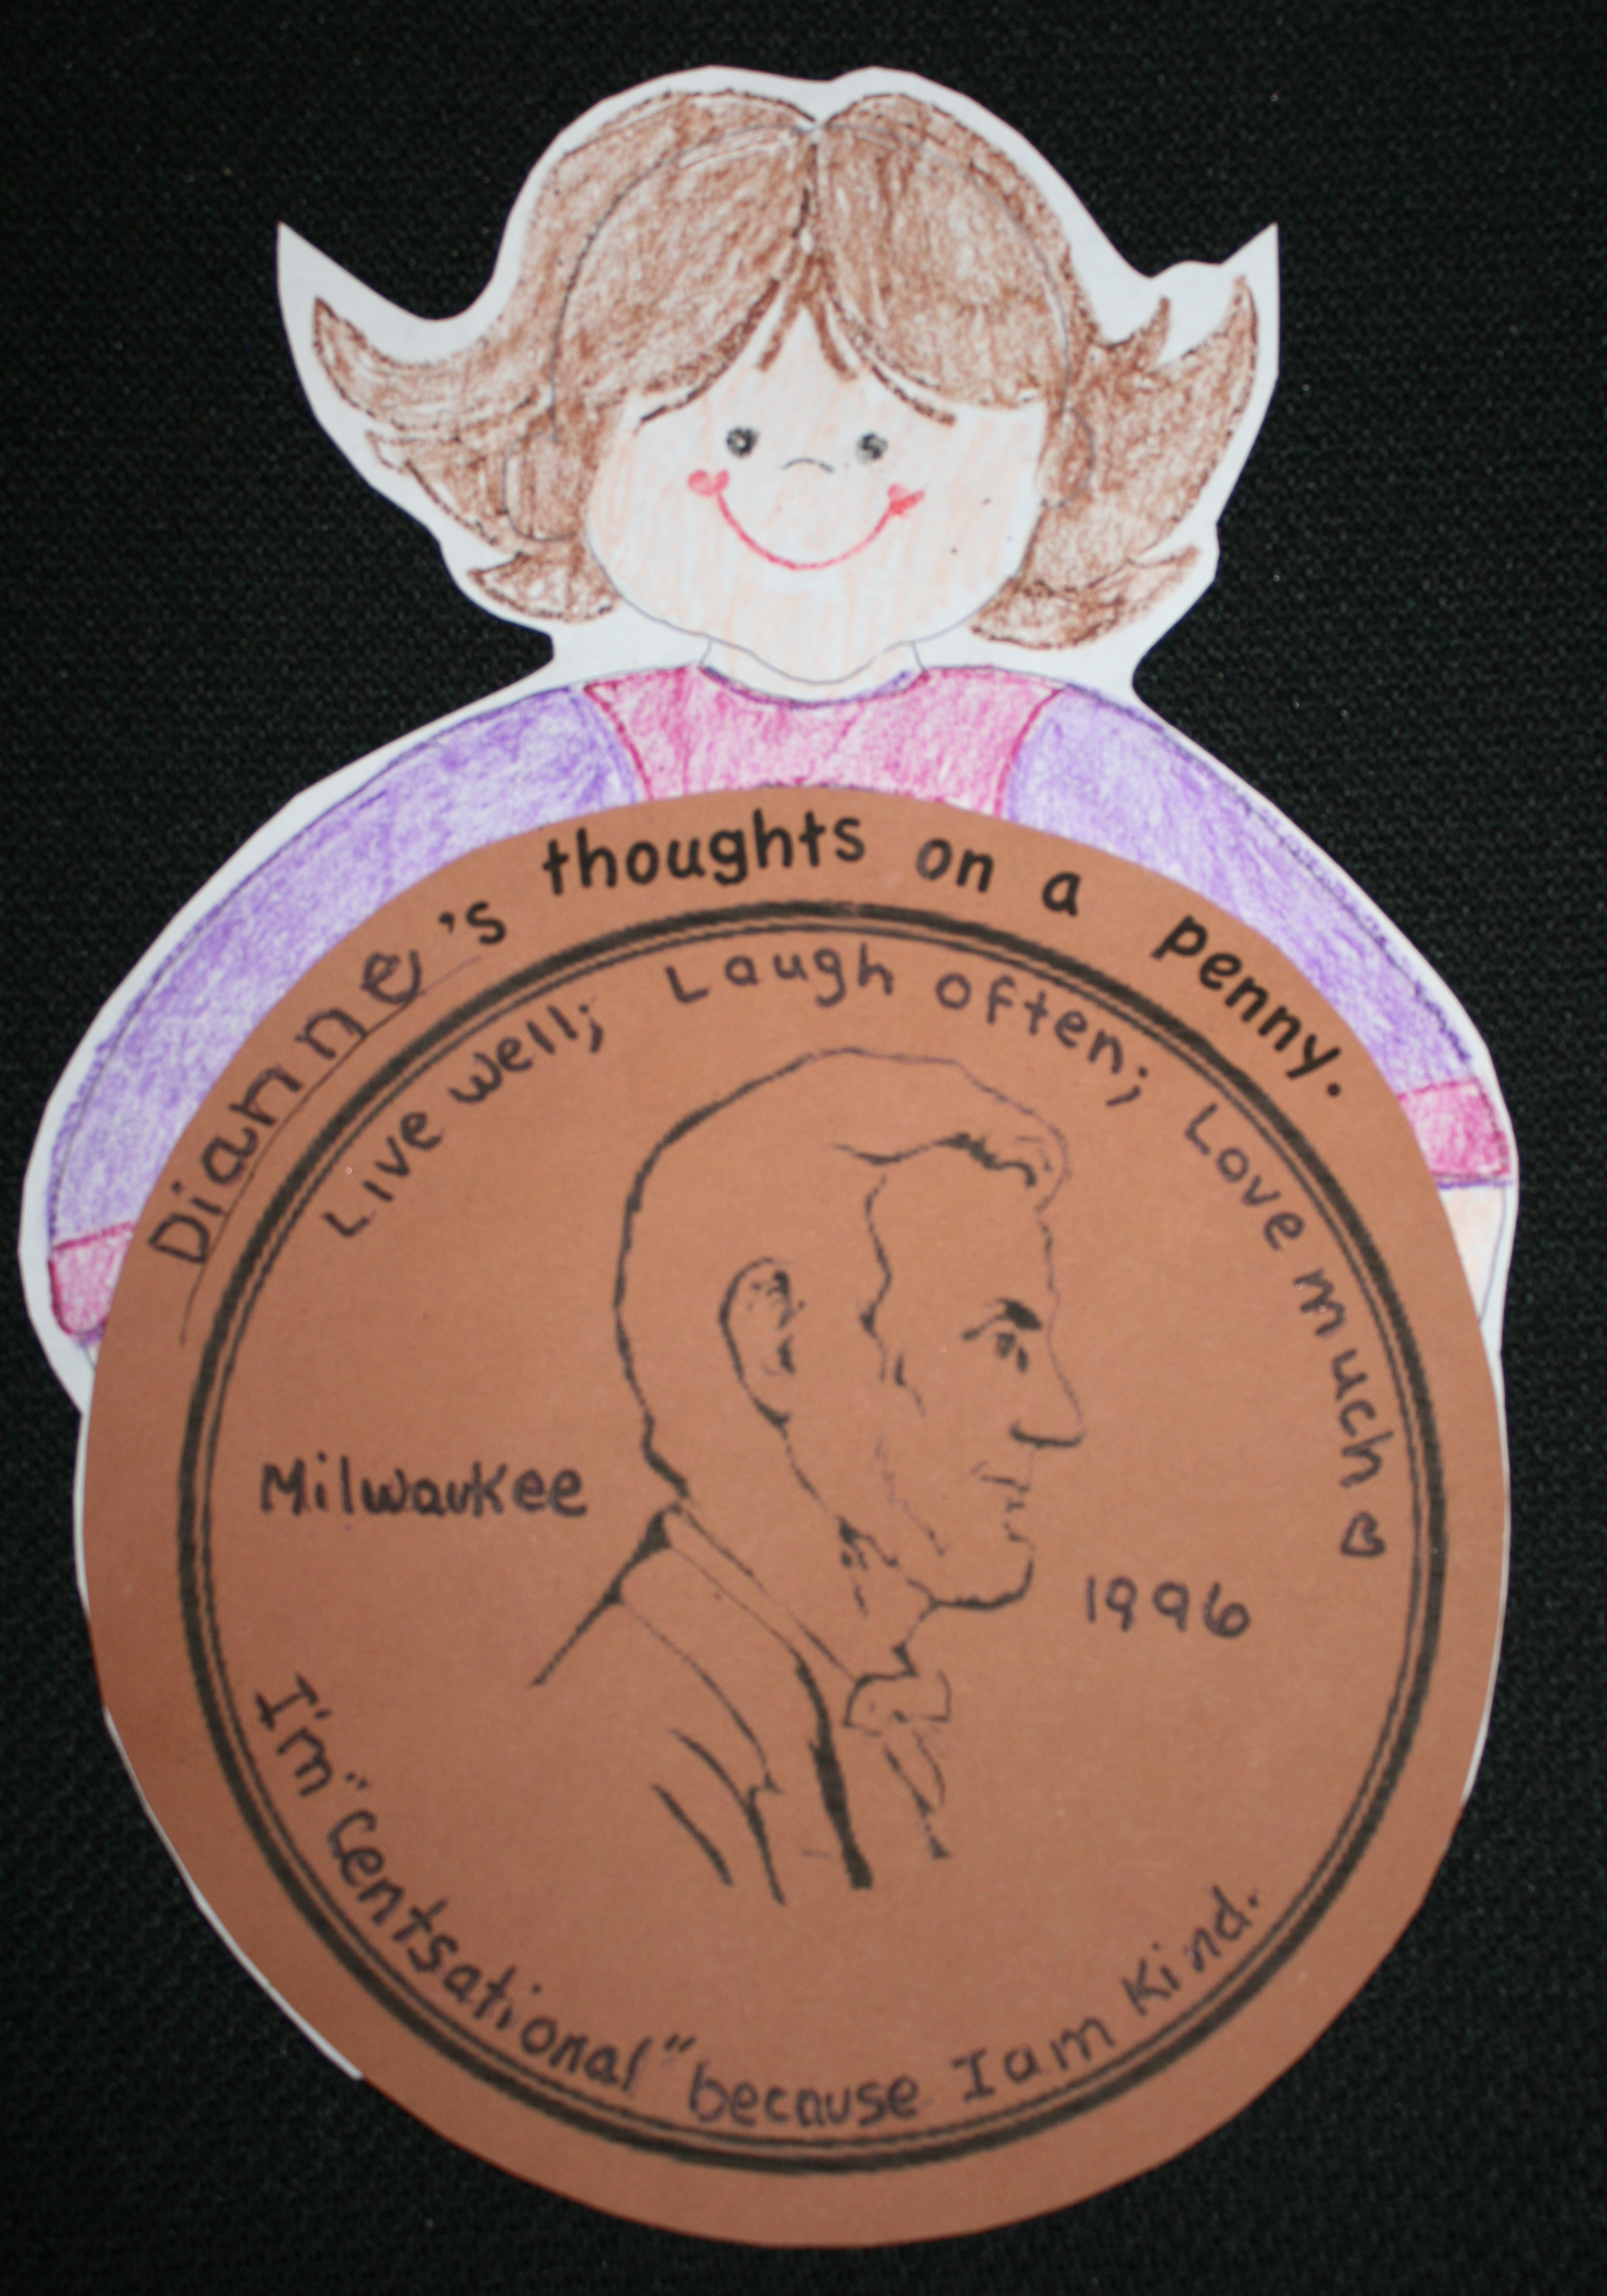 presidents day activities, presidents day ideas, februrary writing prompts, presidents day writing prompts, presidents day booklet, money booklet, money ideas, money activities, penny activities, penny ideas, penny lessons, penny booket,